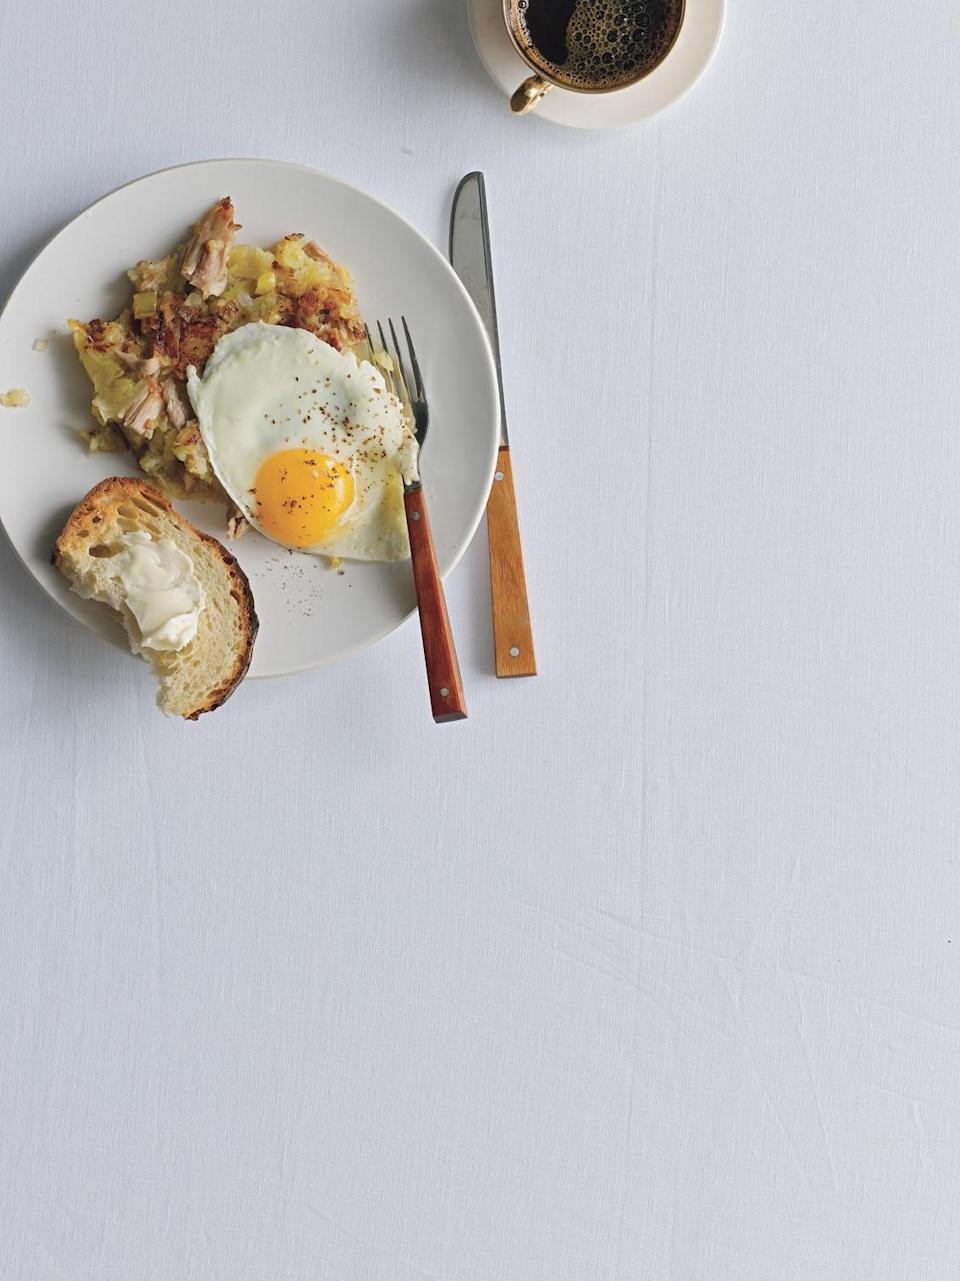 """Once again, a fried egg makes everything better—leftover turkey meat is no exception. <a href=""""https://www.epicurious.com/recipes/food/views/turkey-hash-350650?mbid=synd_yahoo_rss"""" rel=""""nofollow noopener"""" target=""""_blank"""" data-ylk=""""slk:See recipe."""" class=""""link rapid-noclick-resp"""">See recipe.</a>"""